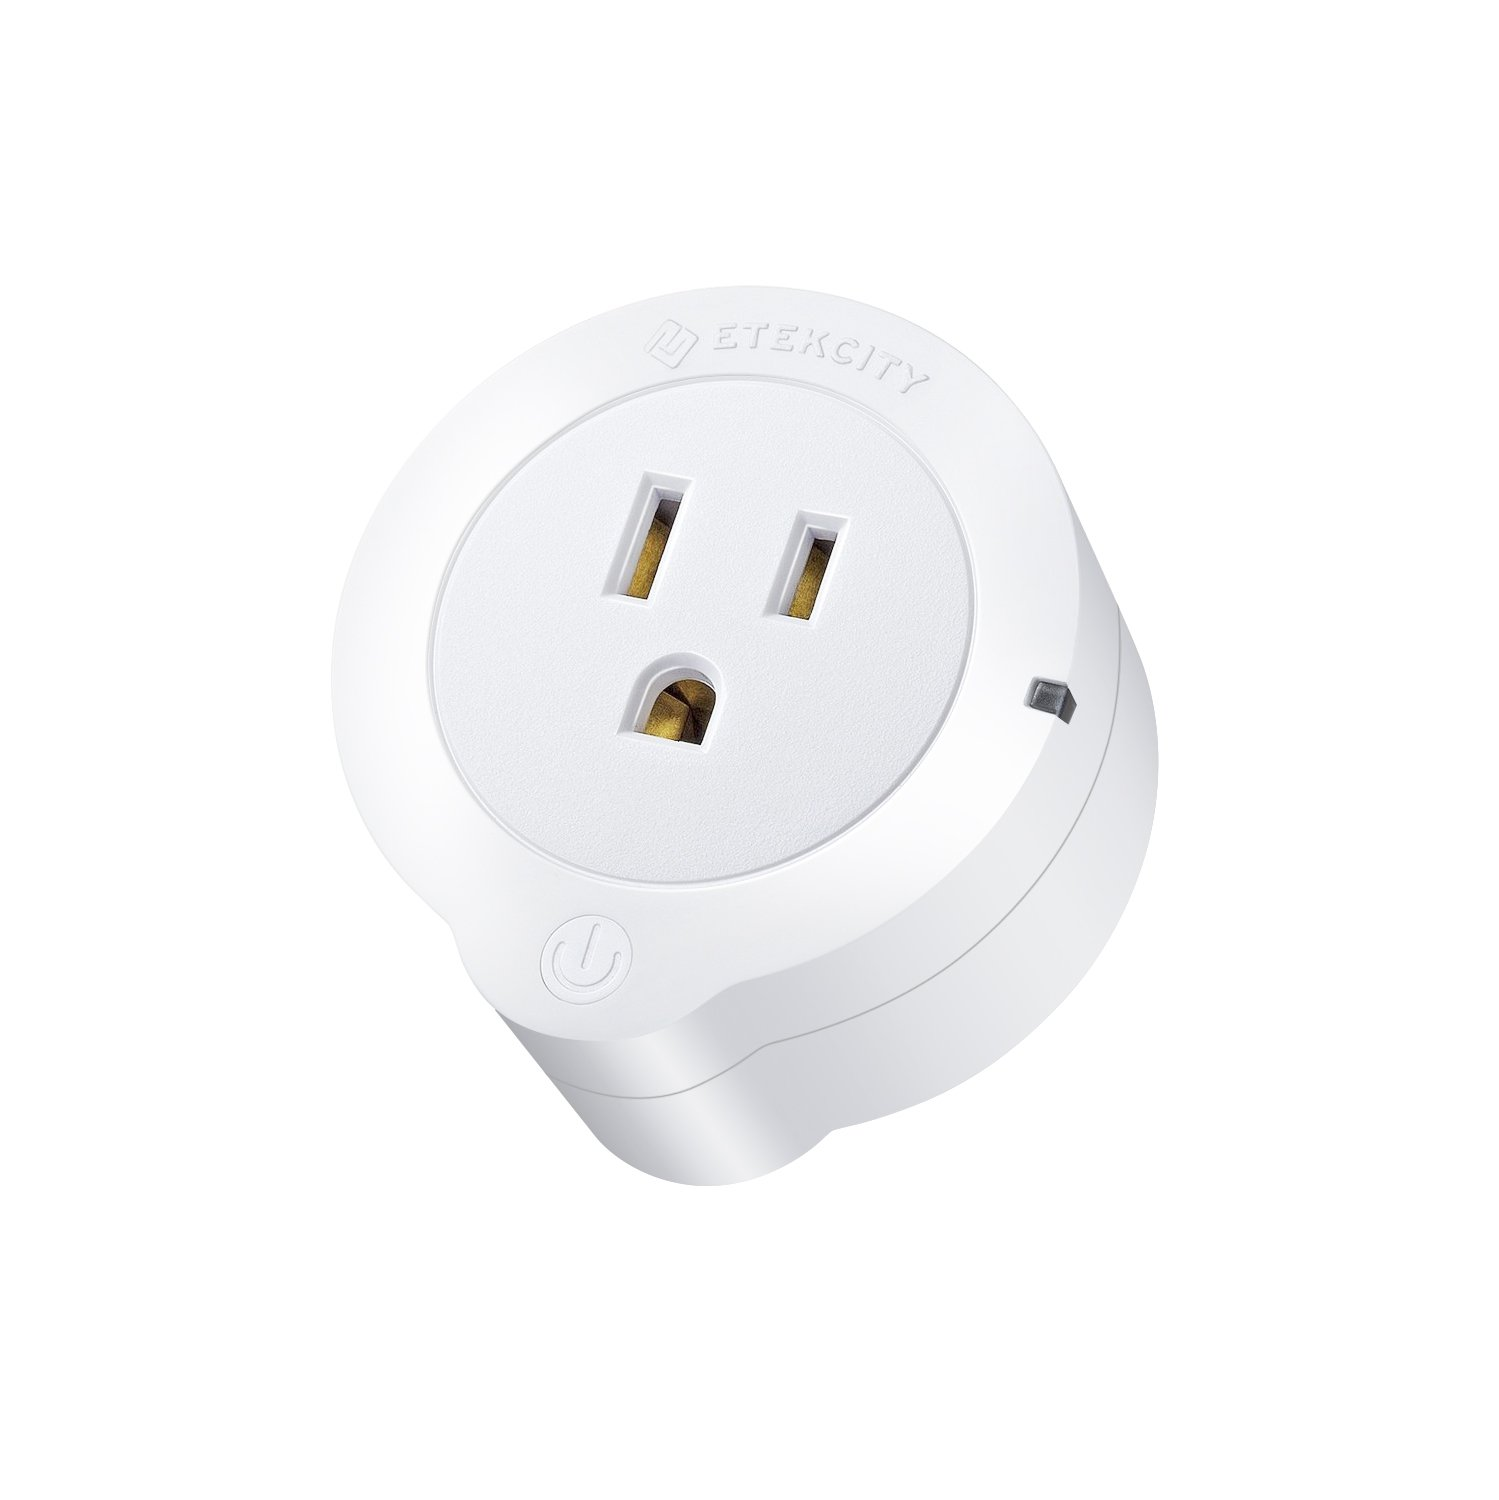 VeSync Mini Smart Plug by Etekcity, WiFi Outlet with Energy Monitoring, Works with Alexa, Google Home and IFTTT, Remote Control from Anywhere, ETL Listed